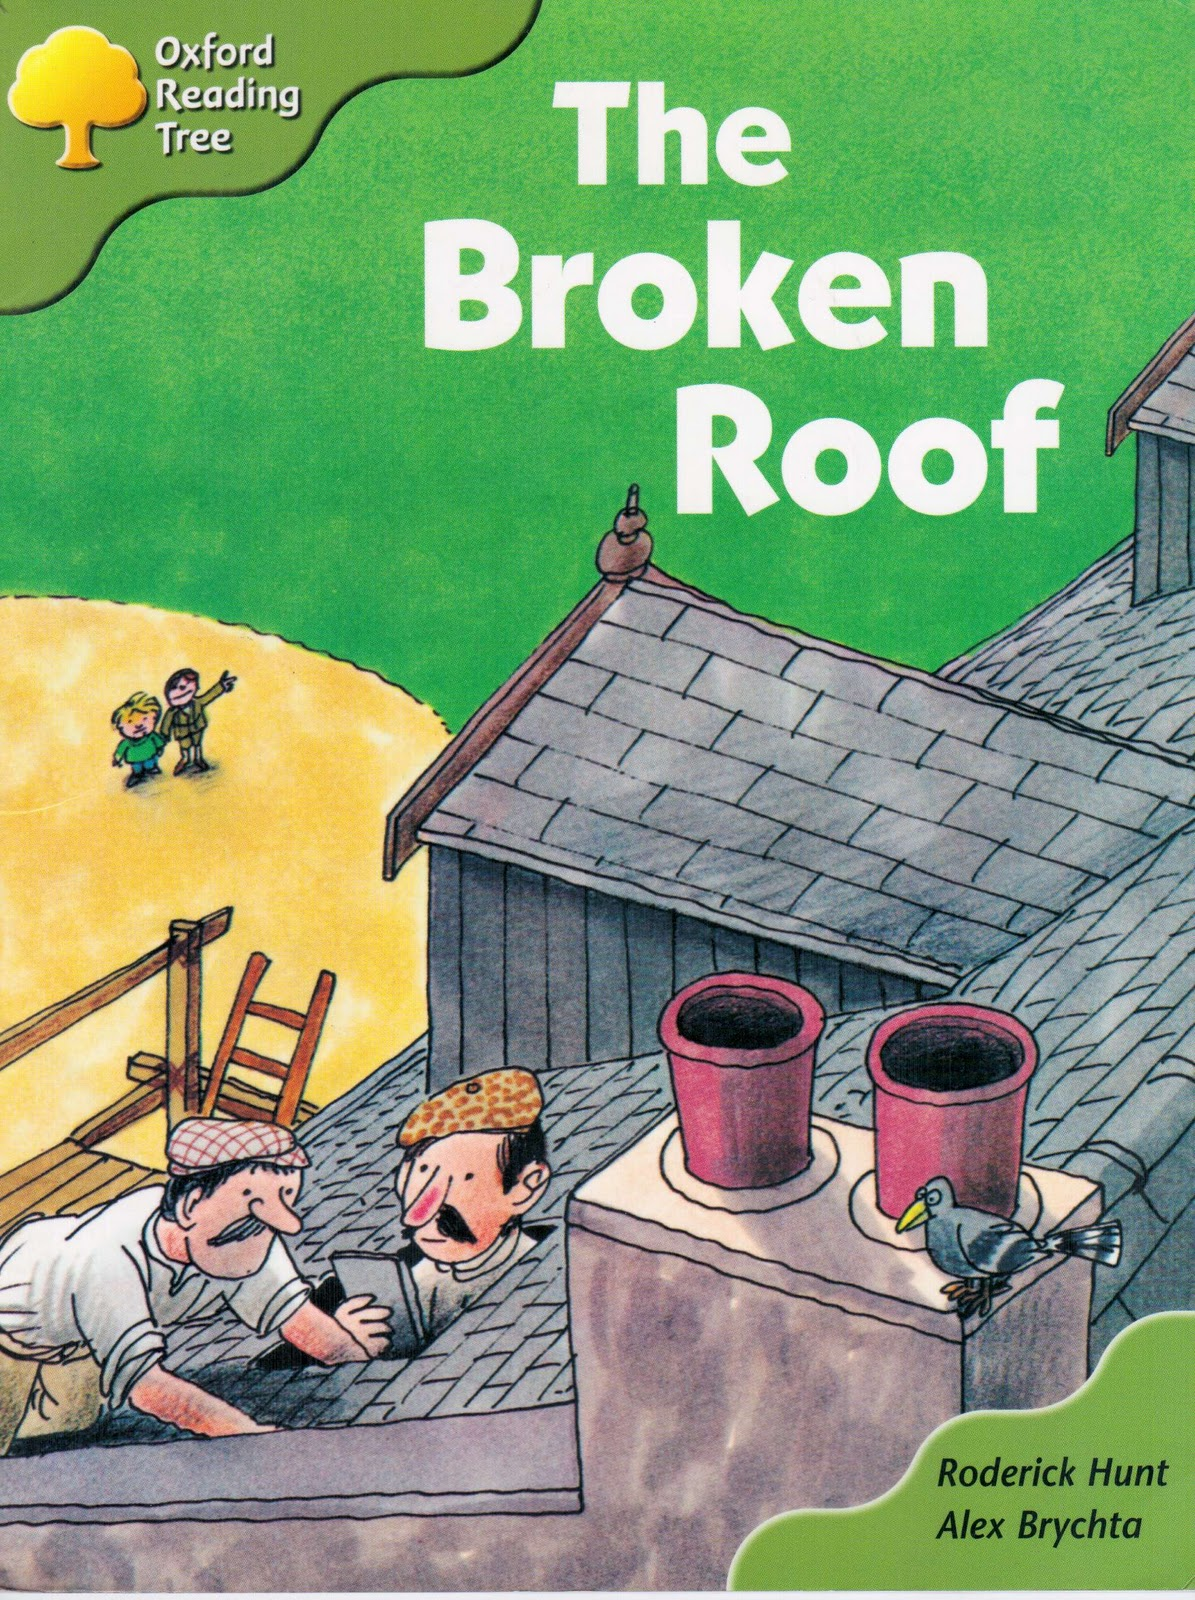 24 D308 Oxford Reading Tree 9 The Broken Roof